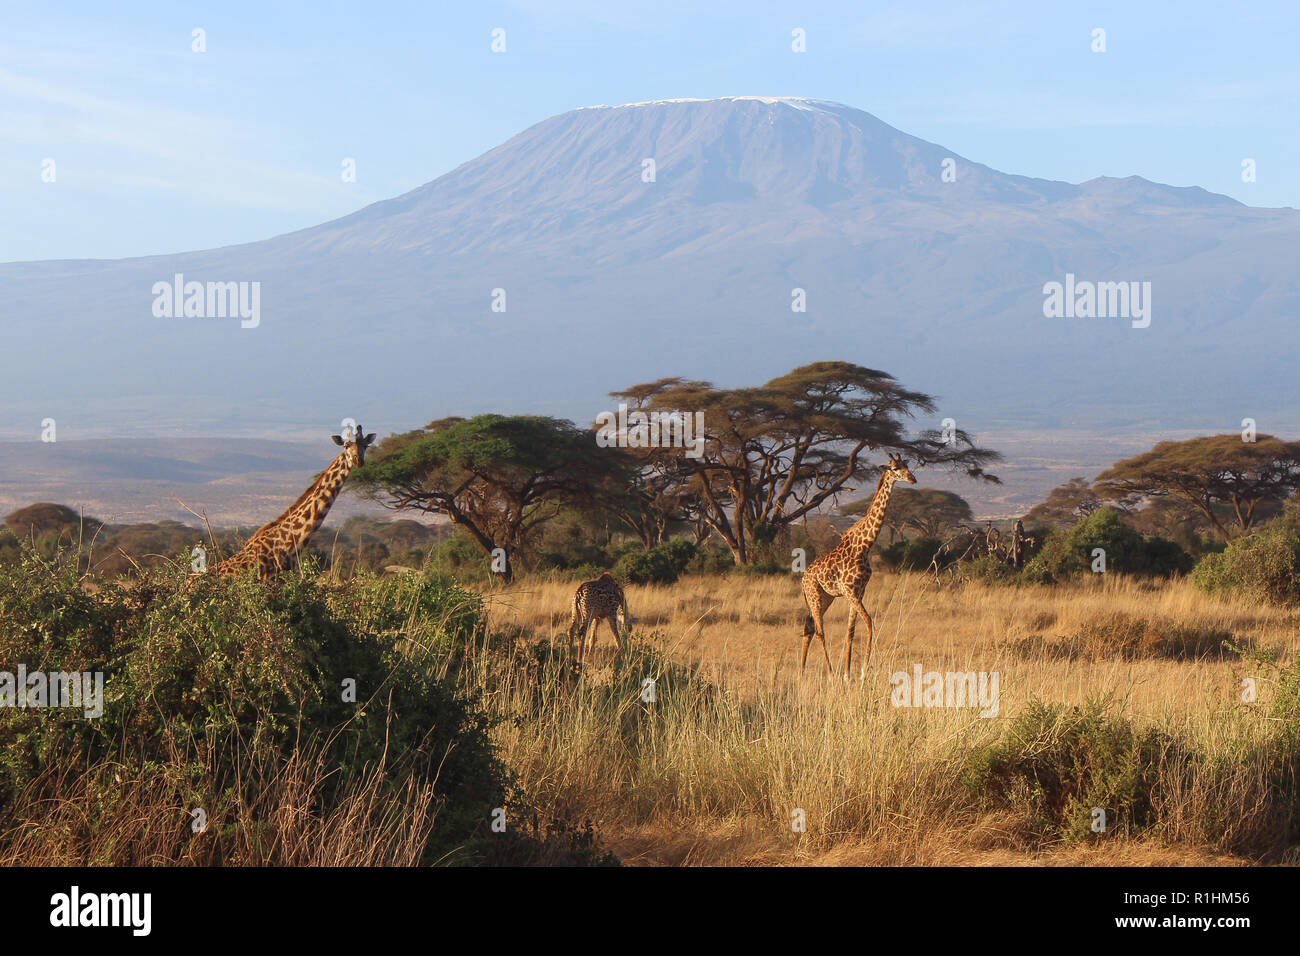 Panoramic view of the Mount Kilimanjaro with giraffes crossing in front - Stock Image